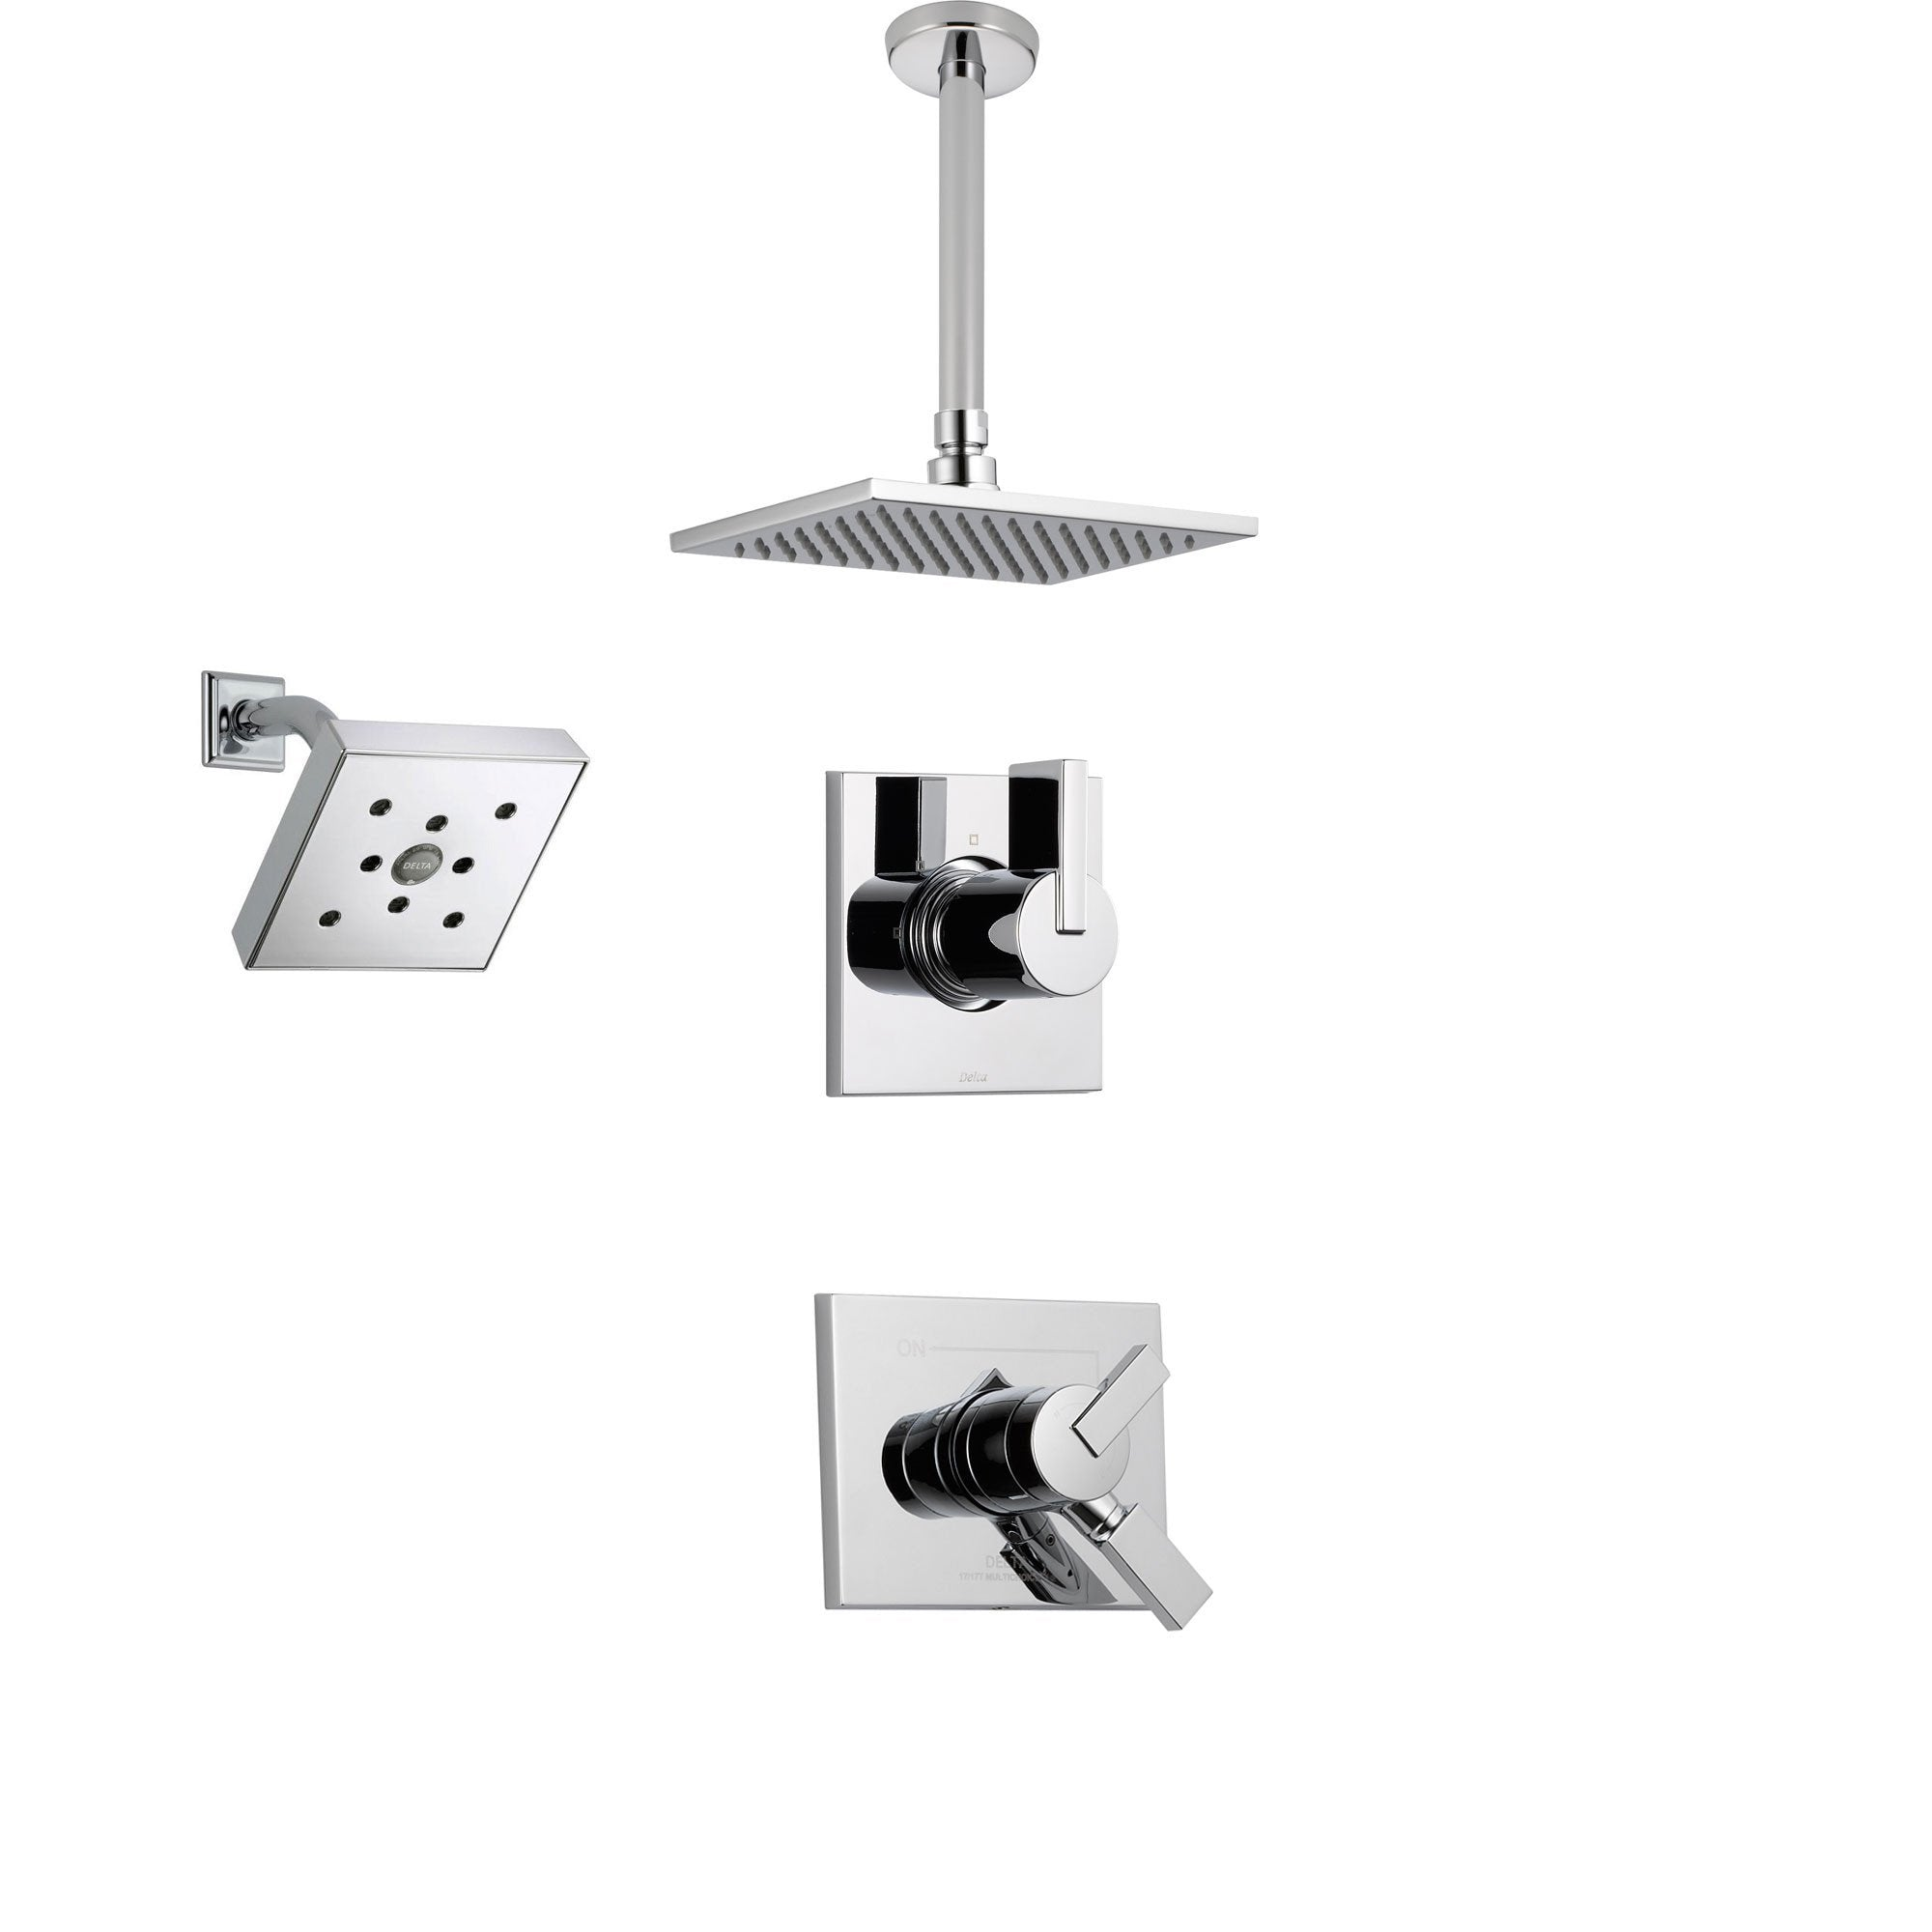 Delta Vero Chrome Shower System with Dual Control Shower Handle, 3-setting Diverter, Modern Square Showerhead, and Large Ceiling Mount Rain Showerhead SS175384